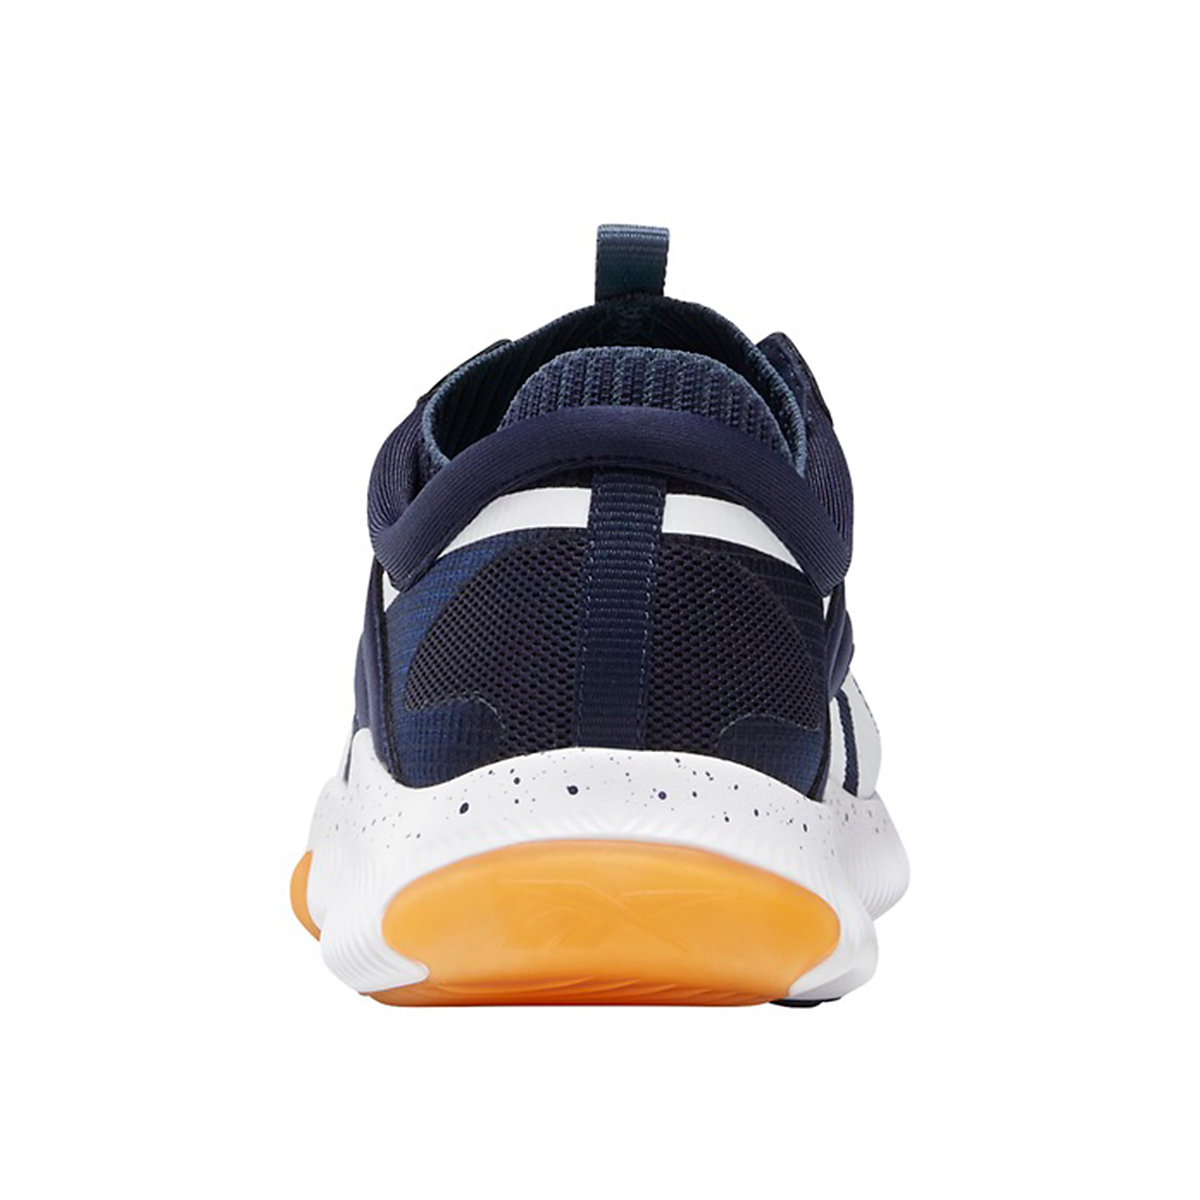 Men's Reebok HIIT Running Shoe - Color: Vector Navy/White - Size: 6 - Width: Regular, Vector Navy/White, large, image 4